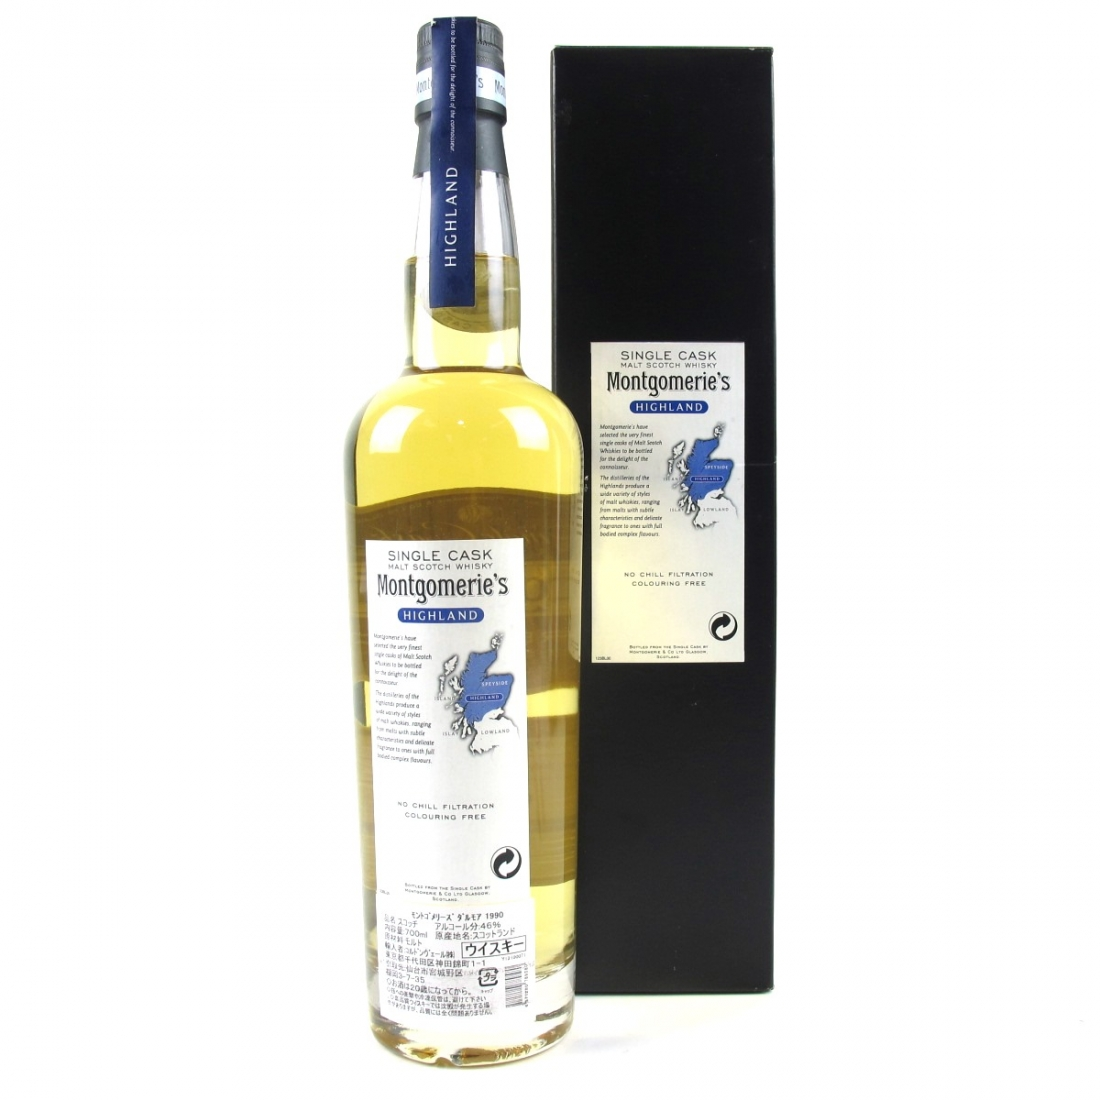 Dalmore 1990 Montgomerie's 19 Year Old